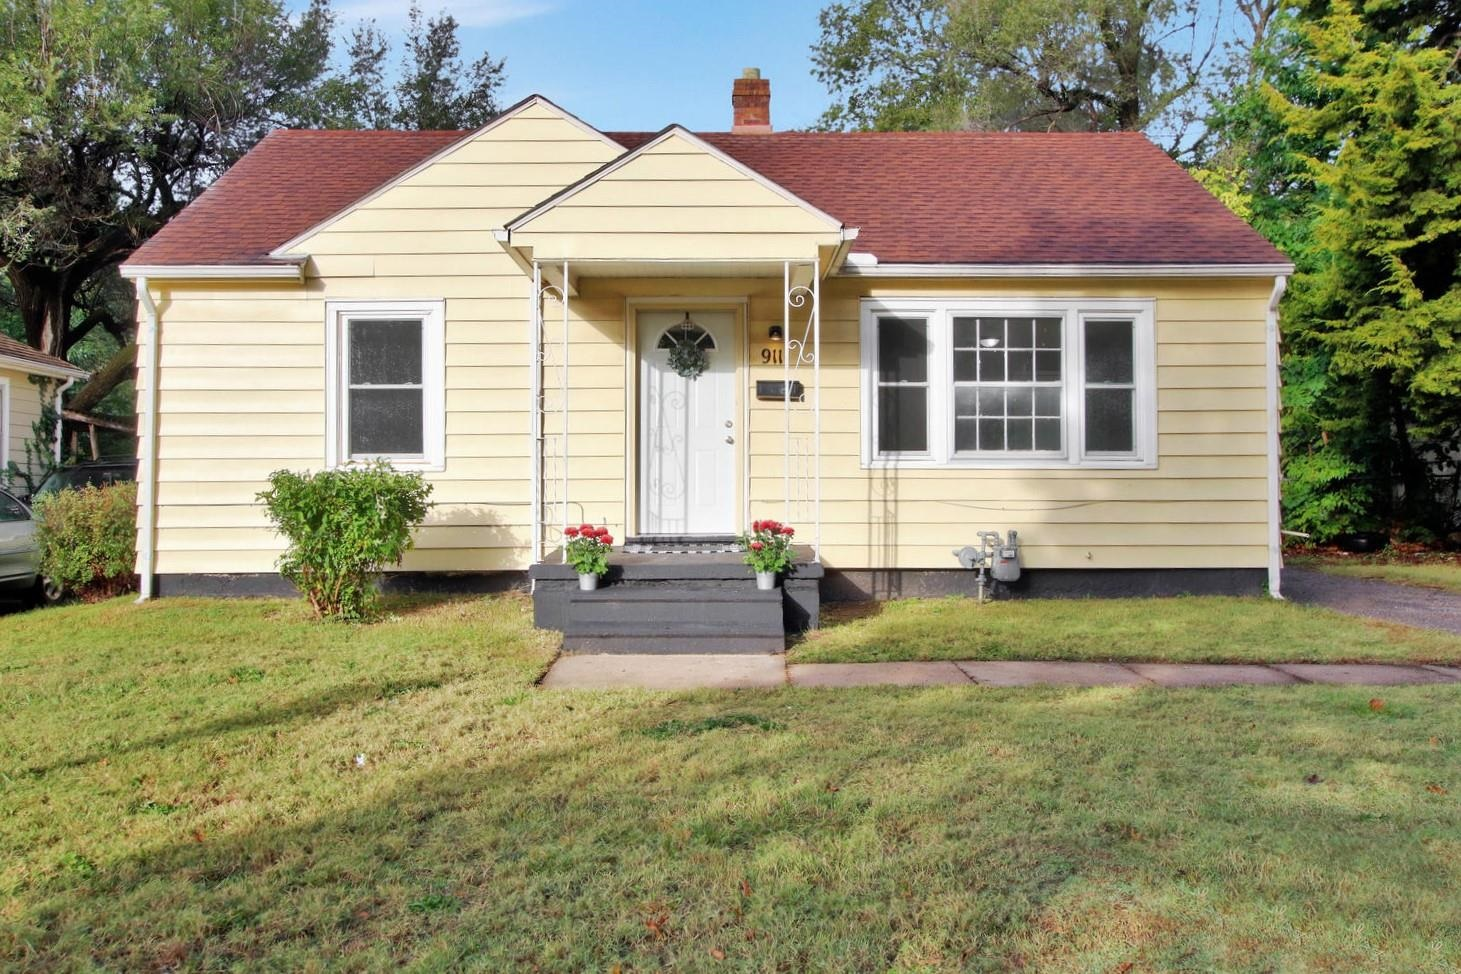 Adorable & fully updated northeast Wichita home. Exterior features vinyl siding, a covered front por